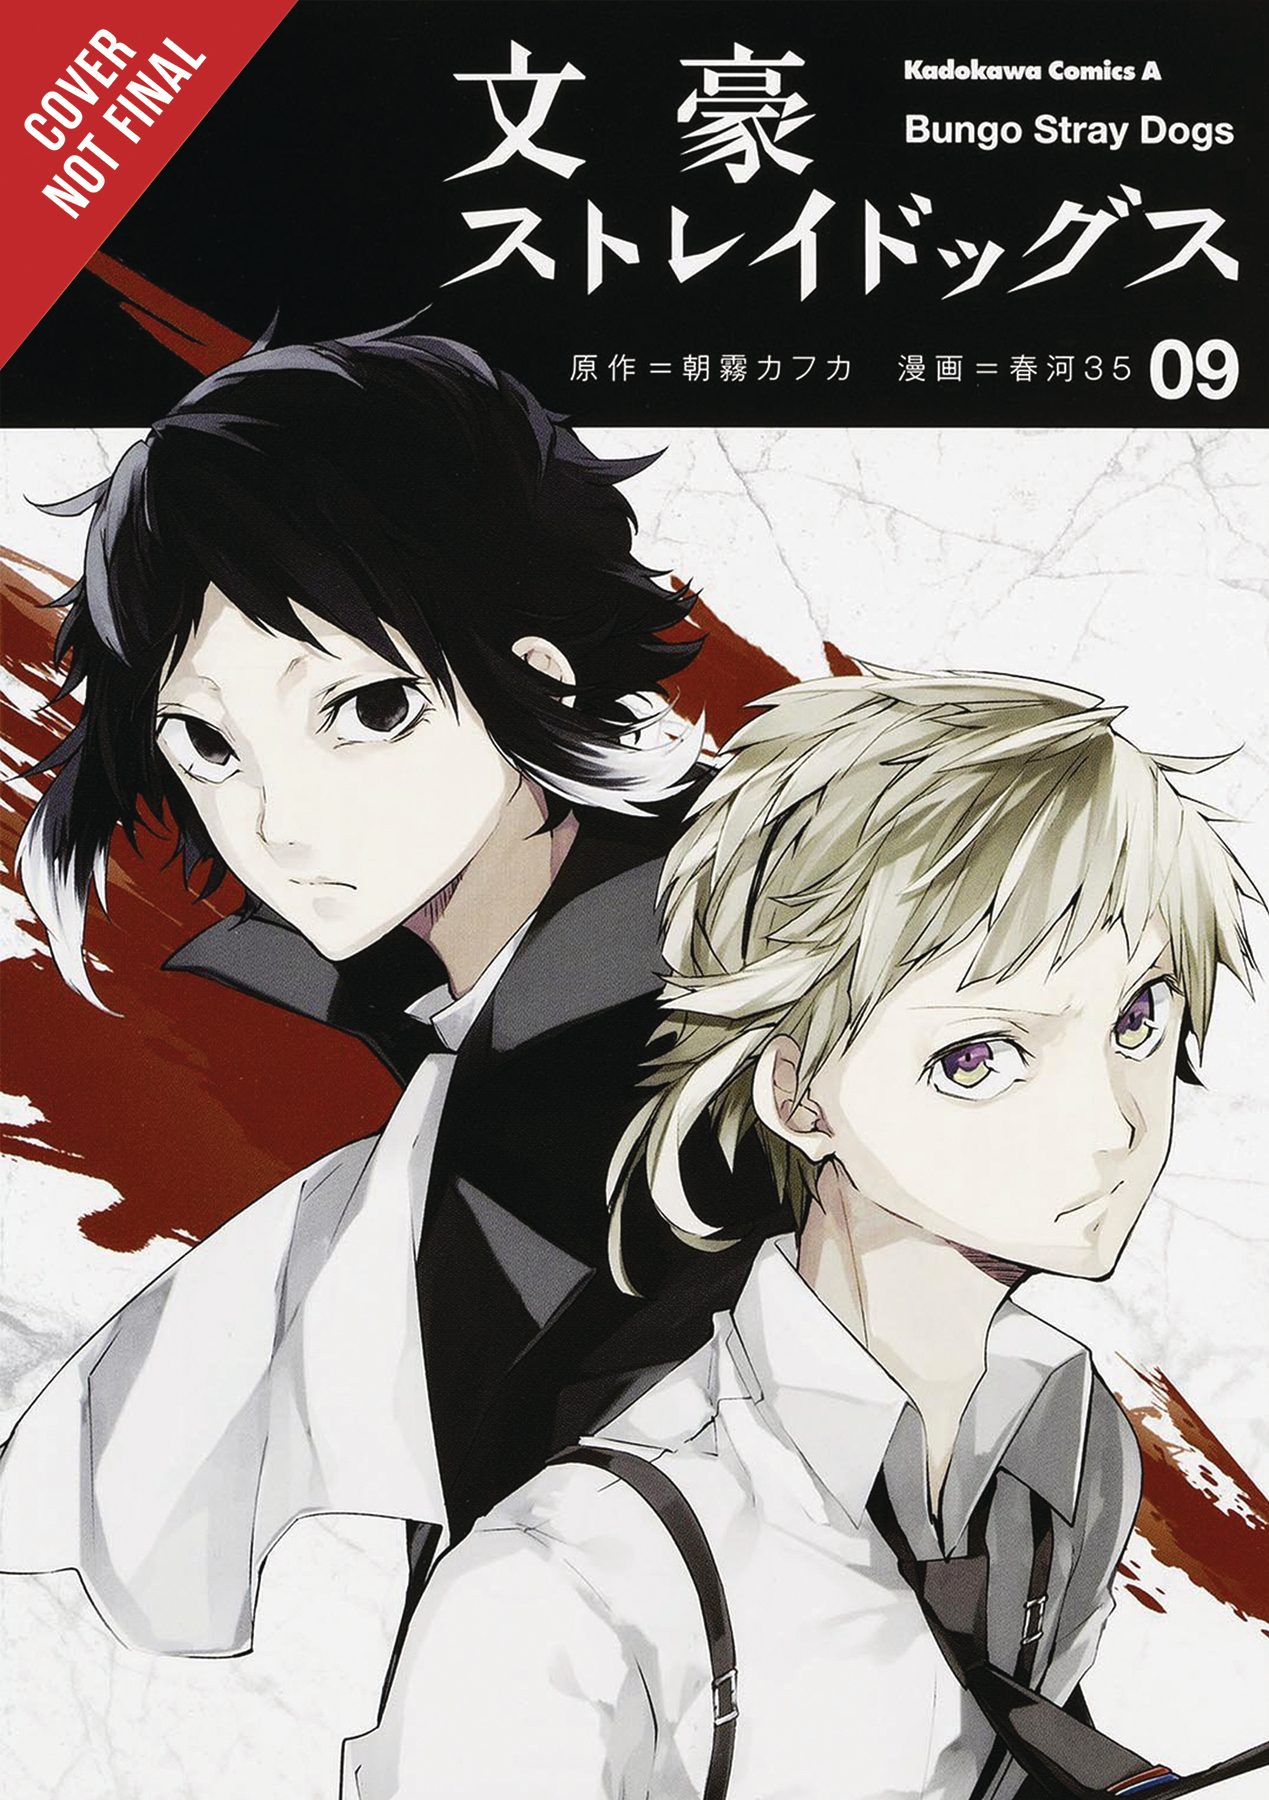 BUNGO STRAY DOGS GN VOL 09